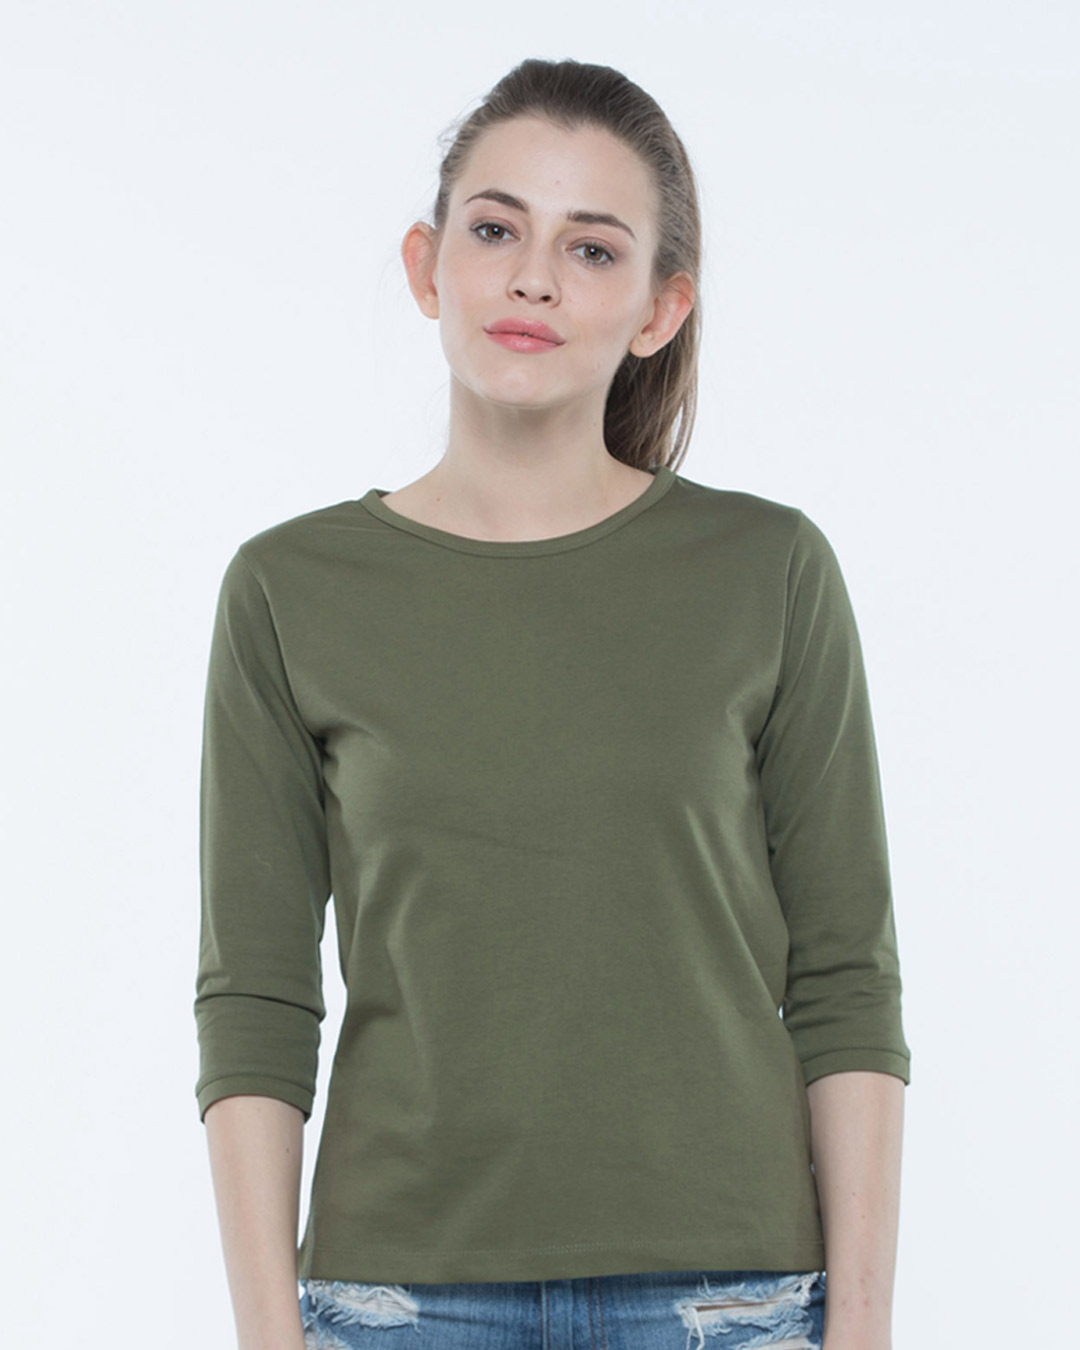 Buy army green 3 4th sleeve t shirt women 39 s 3 4th t shirt for Round neck t shirts for ladies